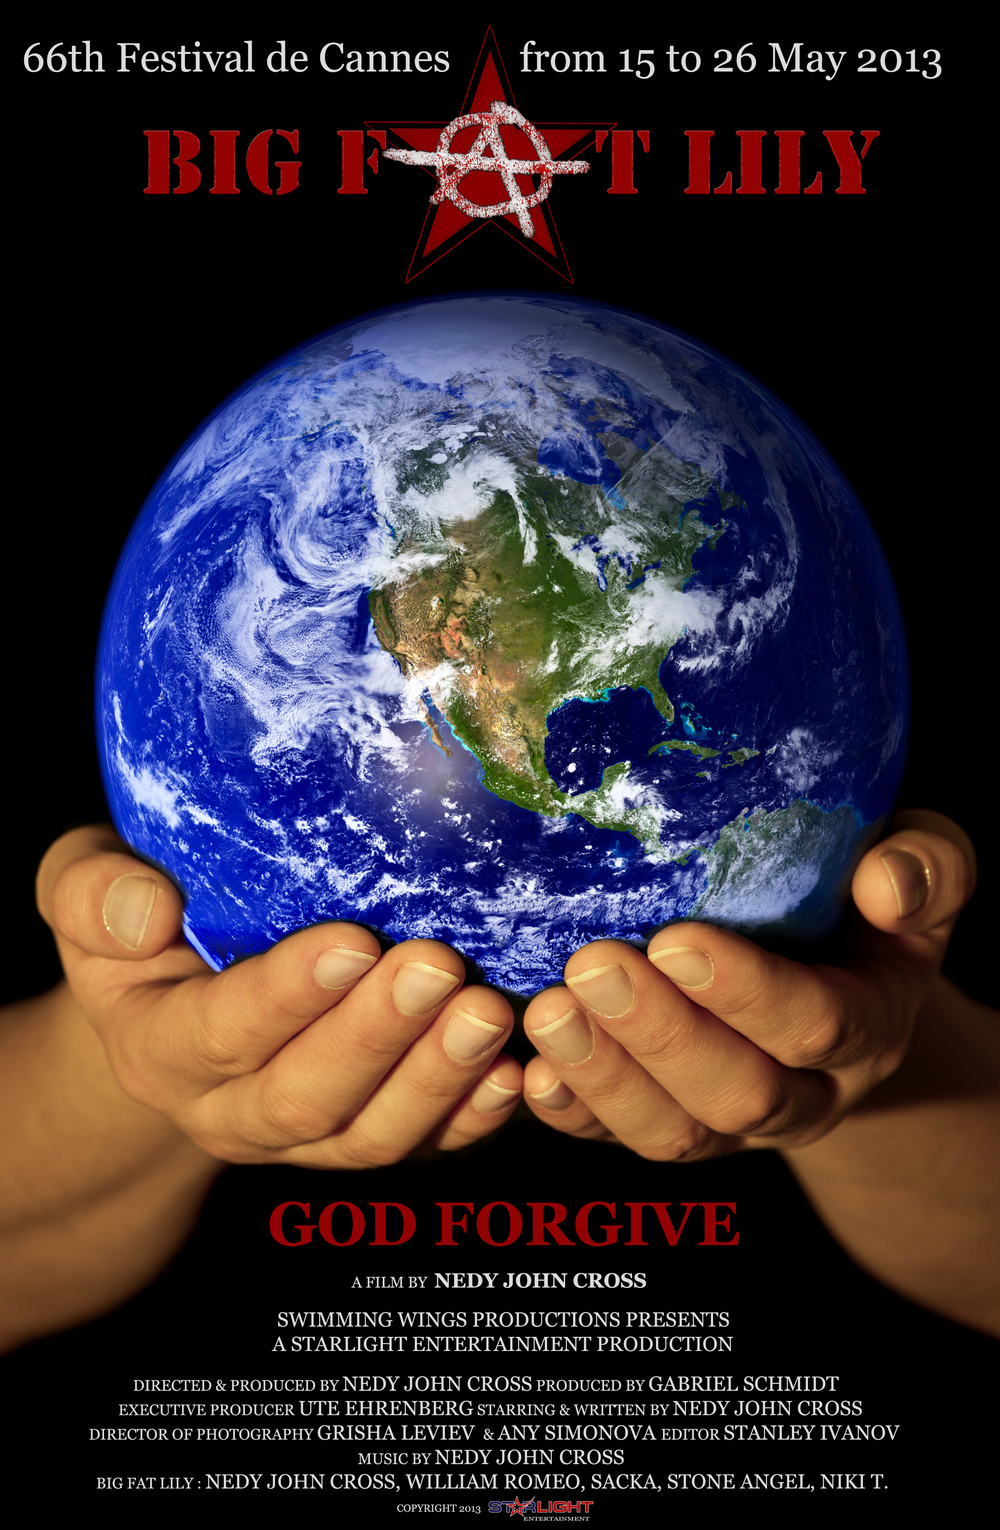 God forgive small.jpg